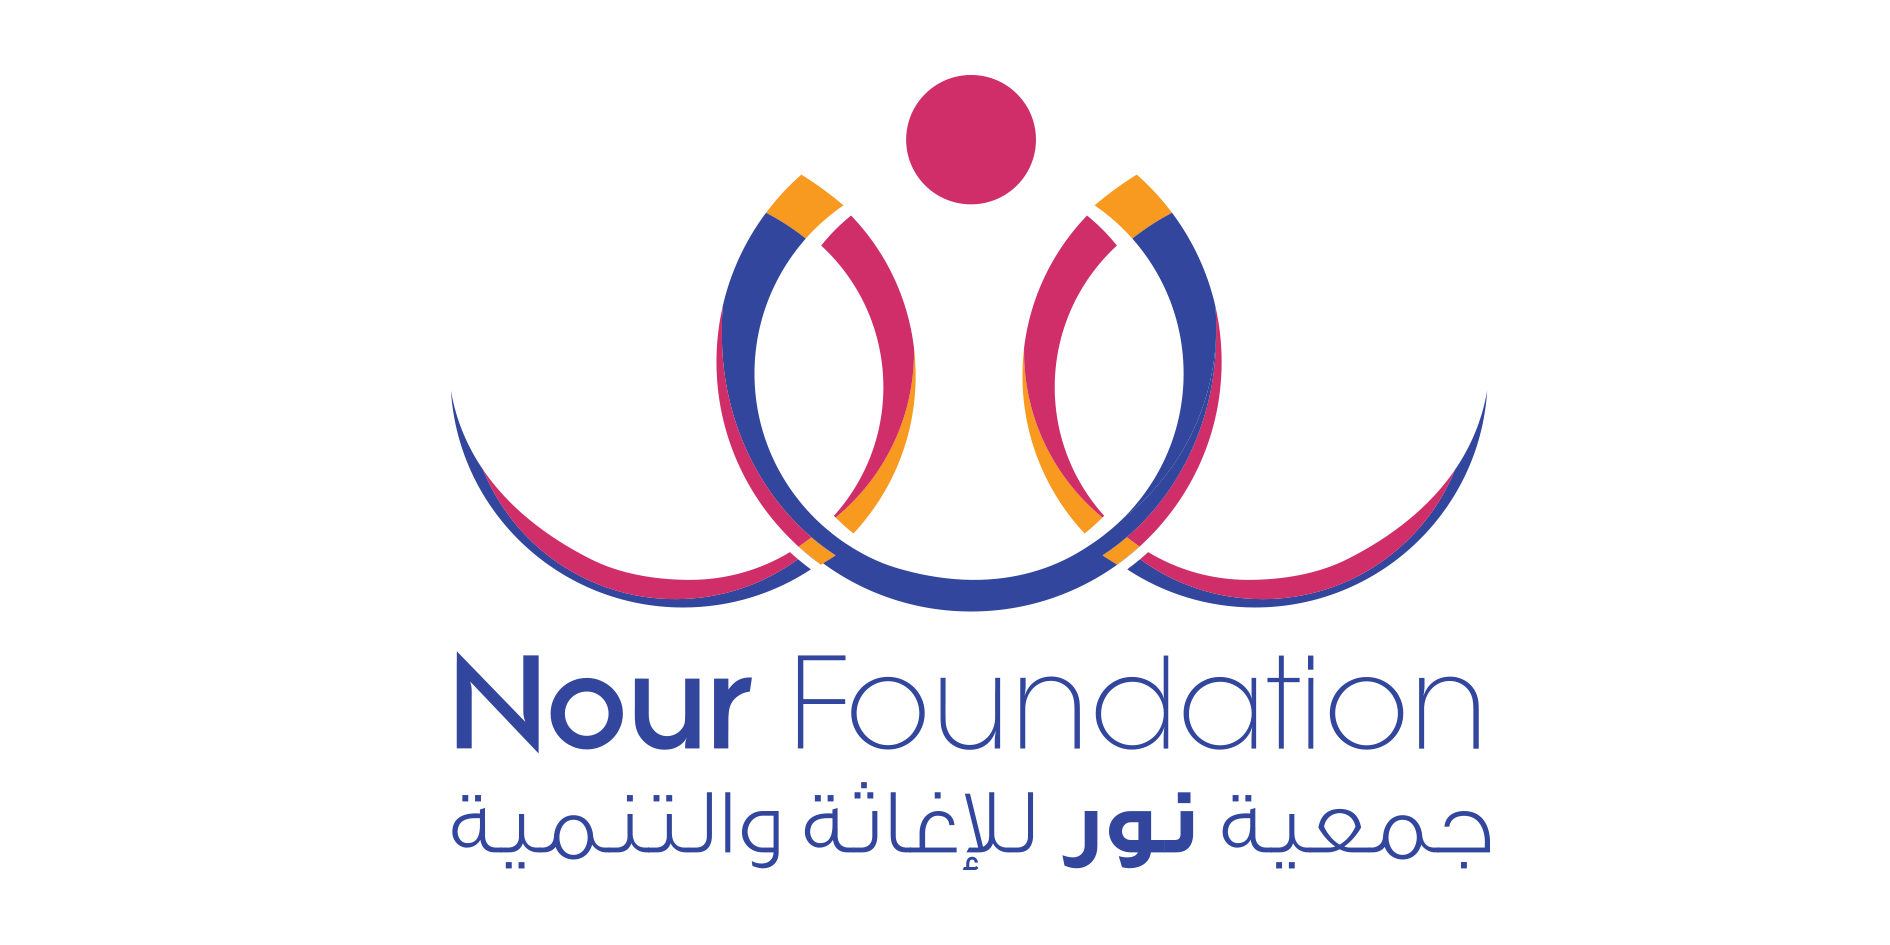 Nour Foundation for Relief & Development